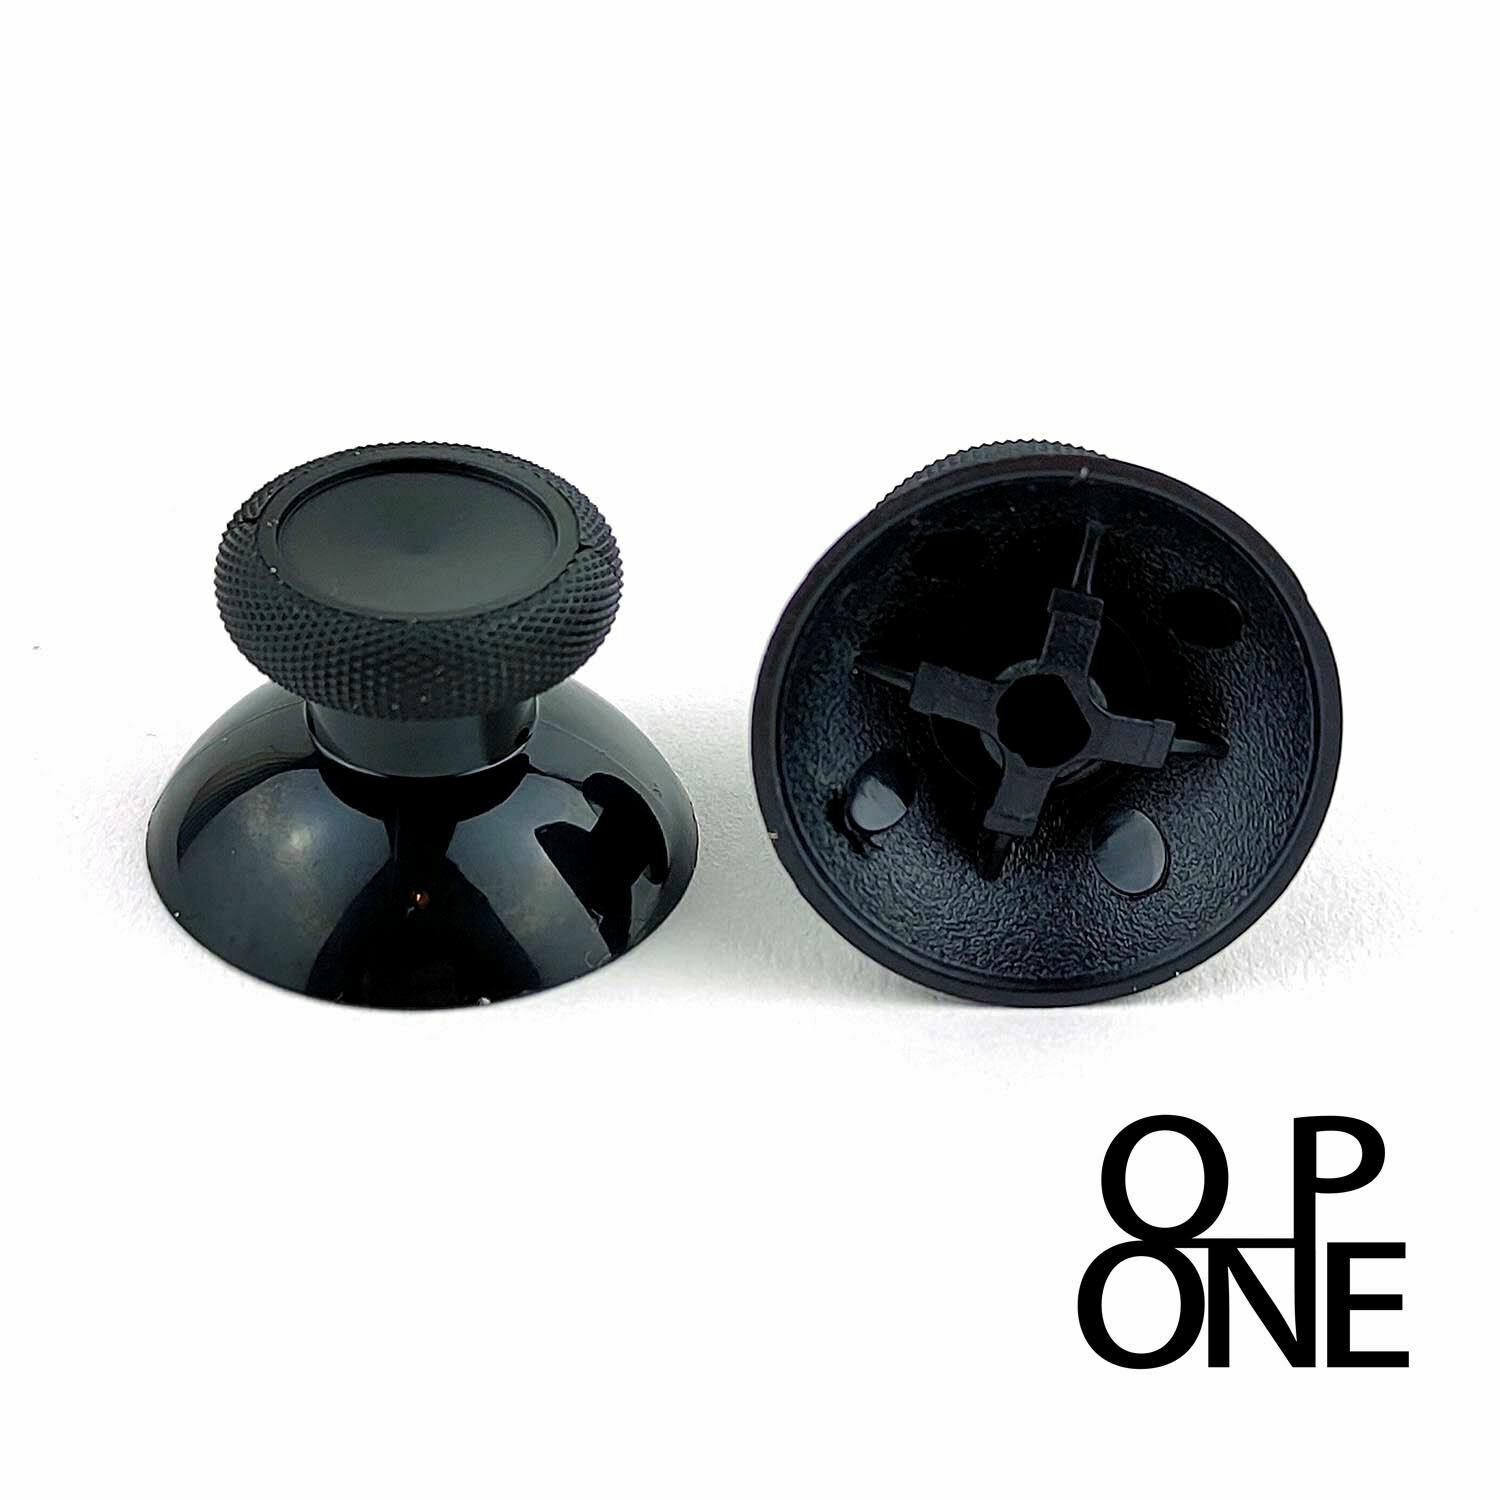 x2 x4 Analog Thumb Sticks Controller Replacement Part For Xbox One